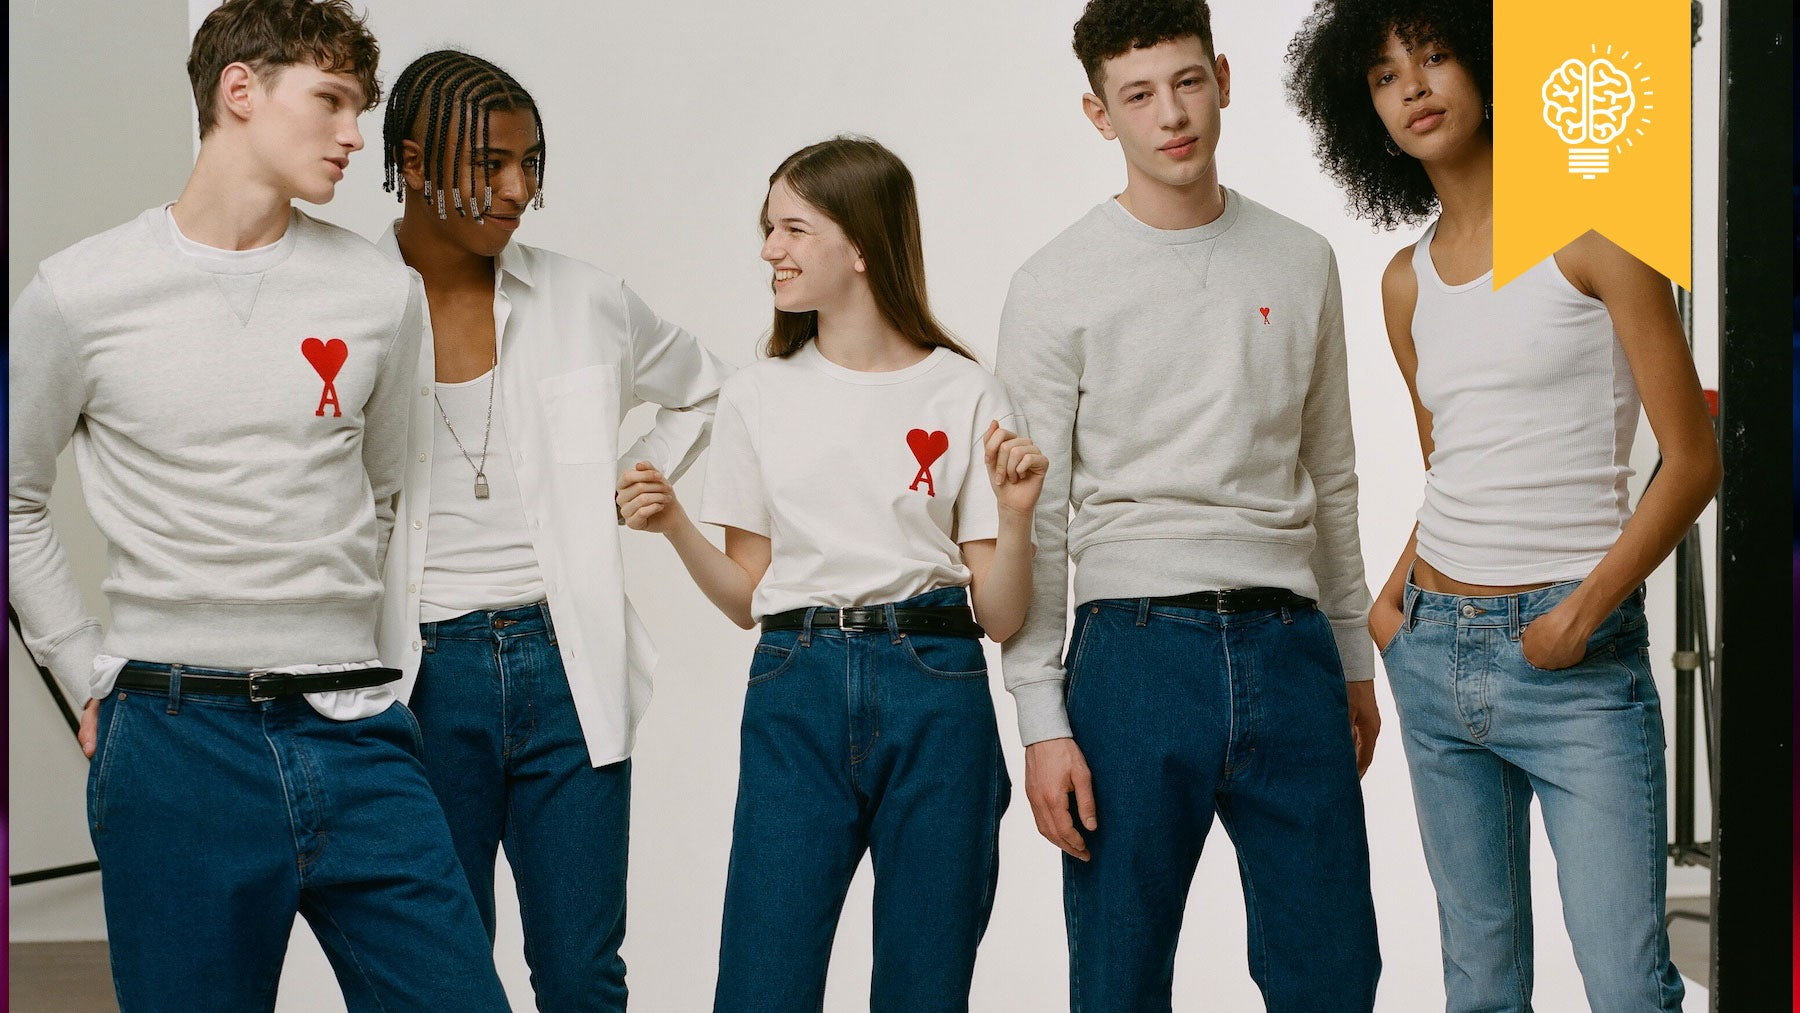 Women Are Key to Growth in the Menswear Market